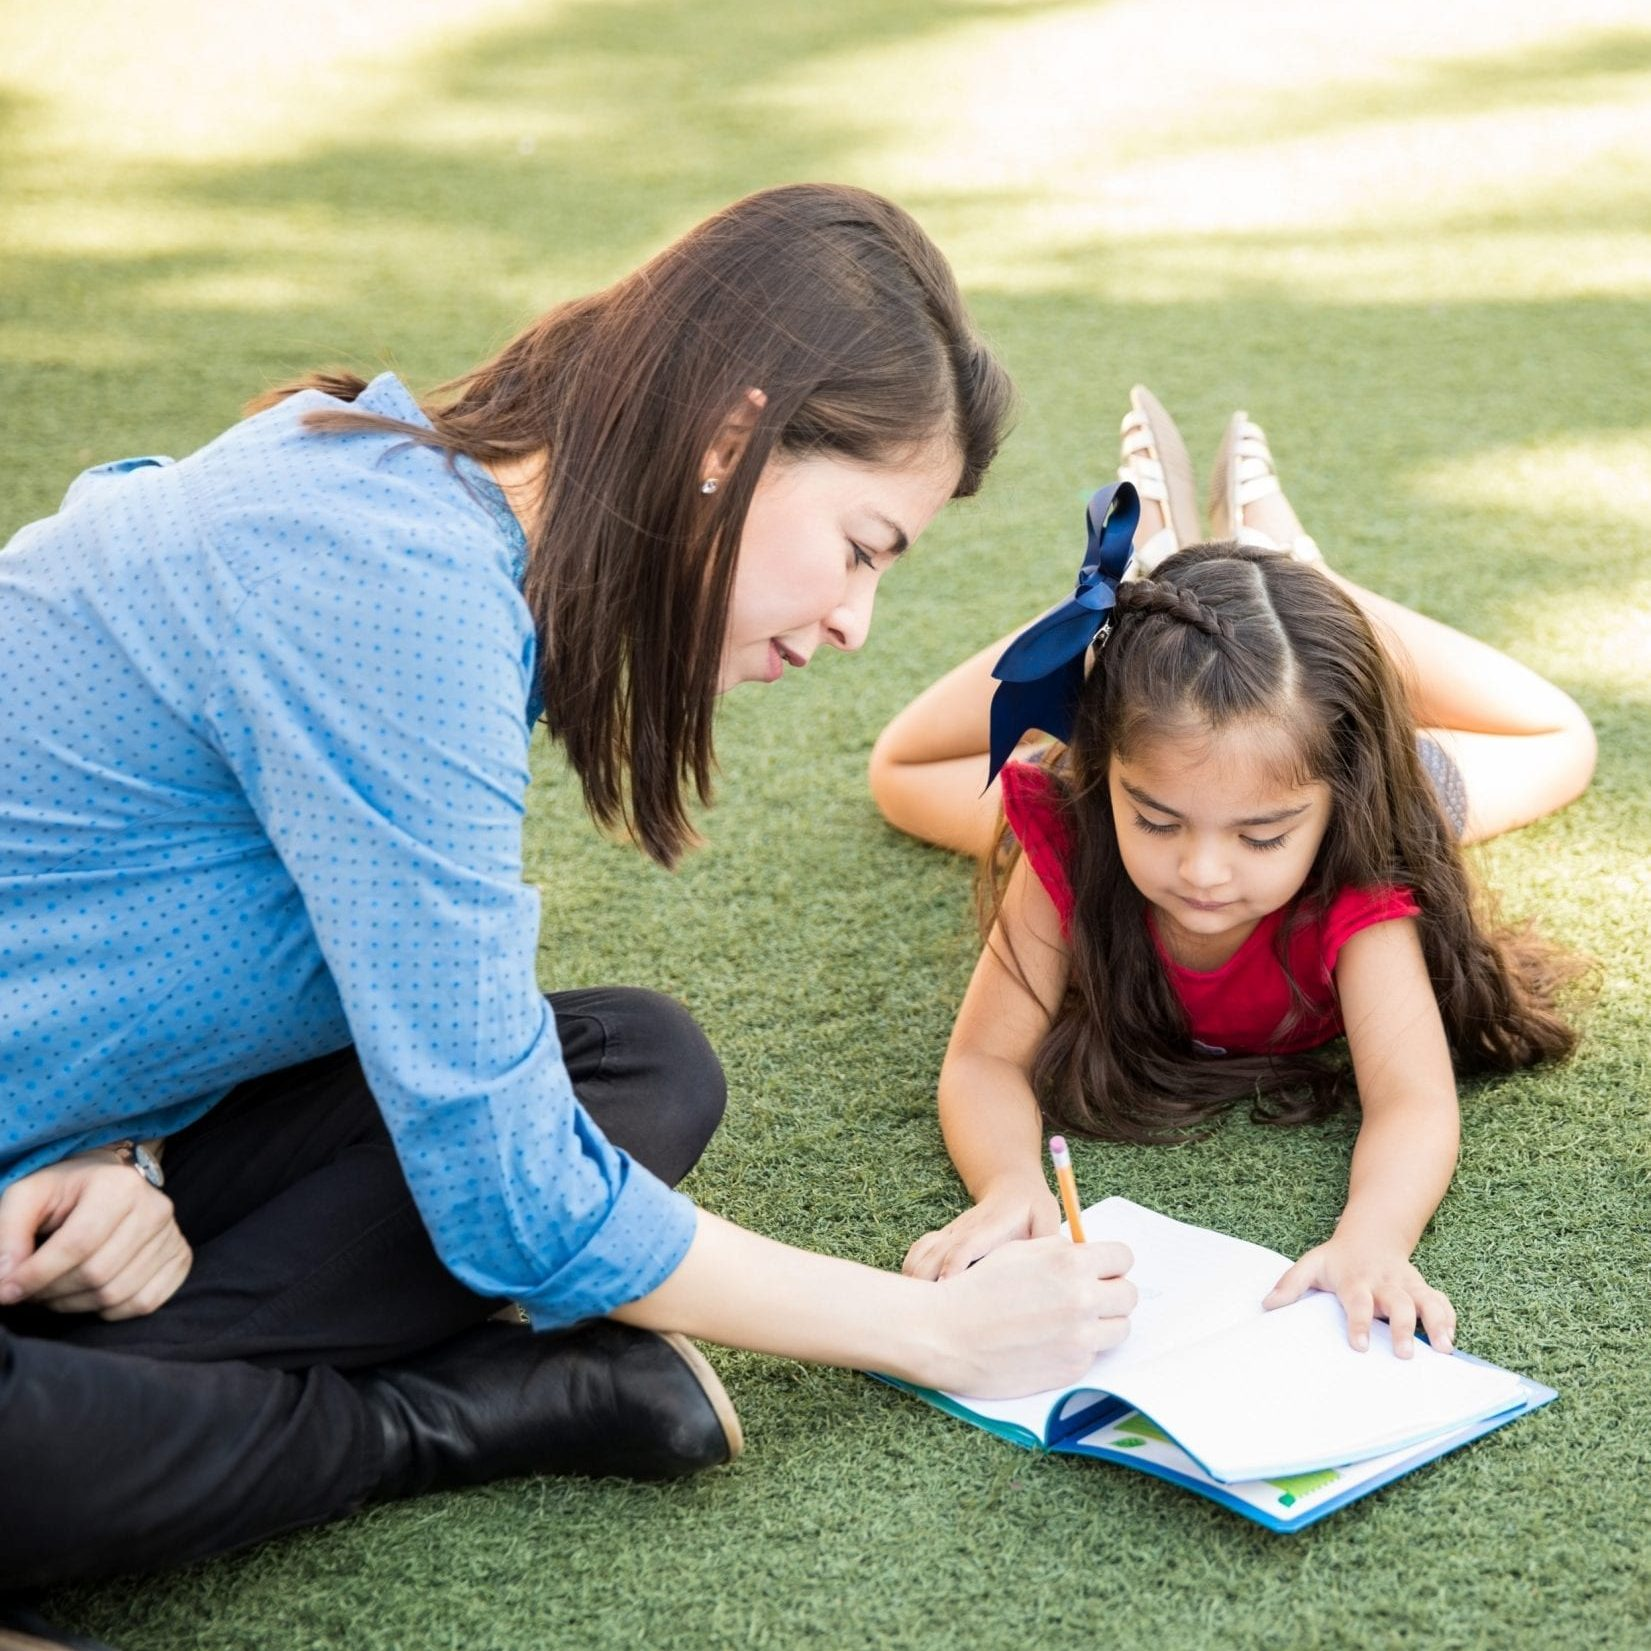 Patient female teacher helping her preschool student with a writing assigment while they take their class outdoors